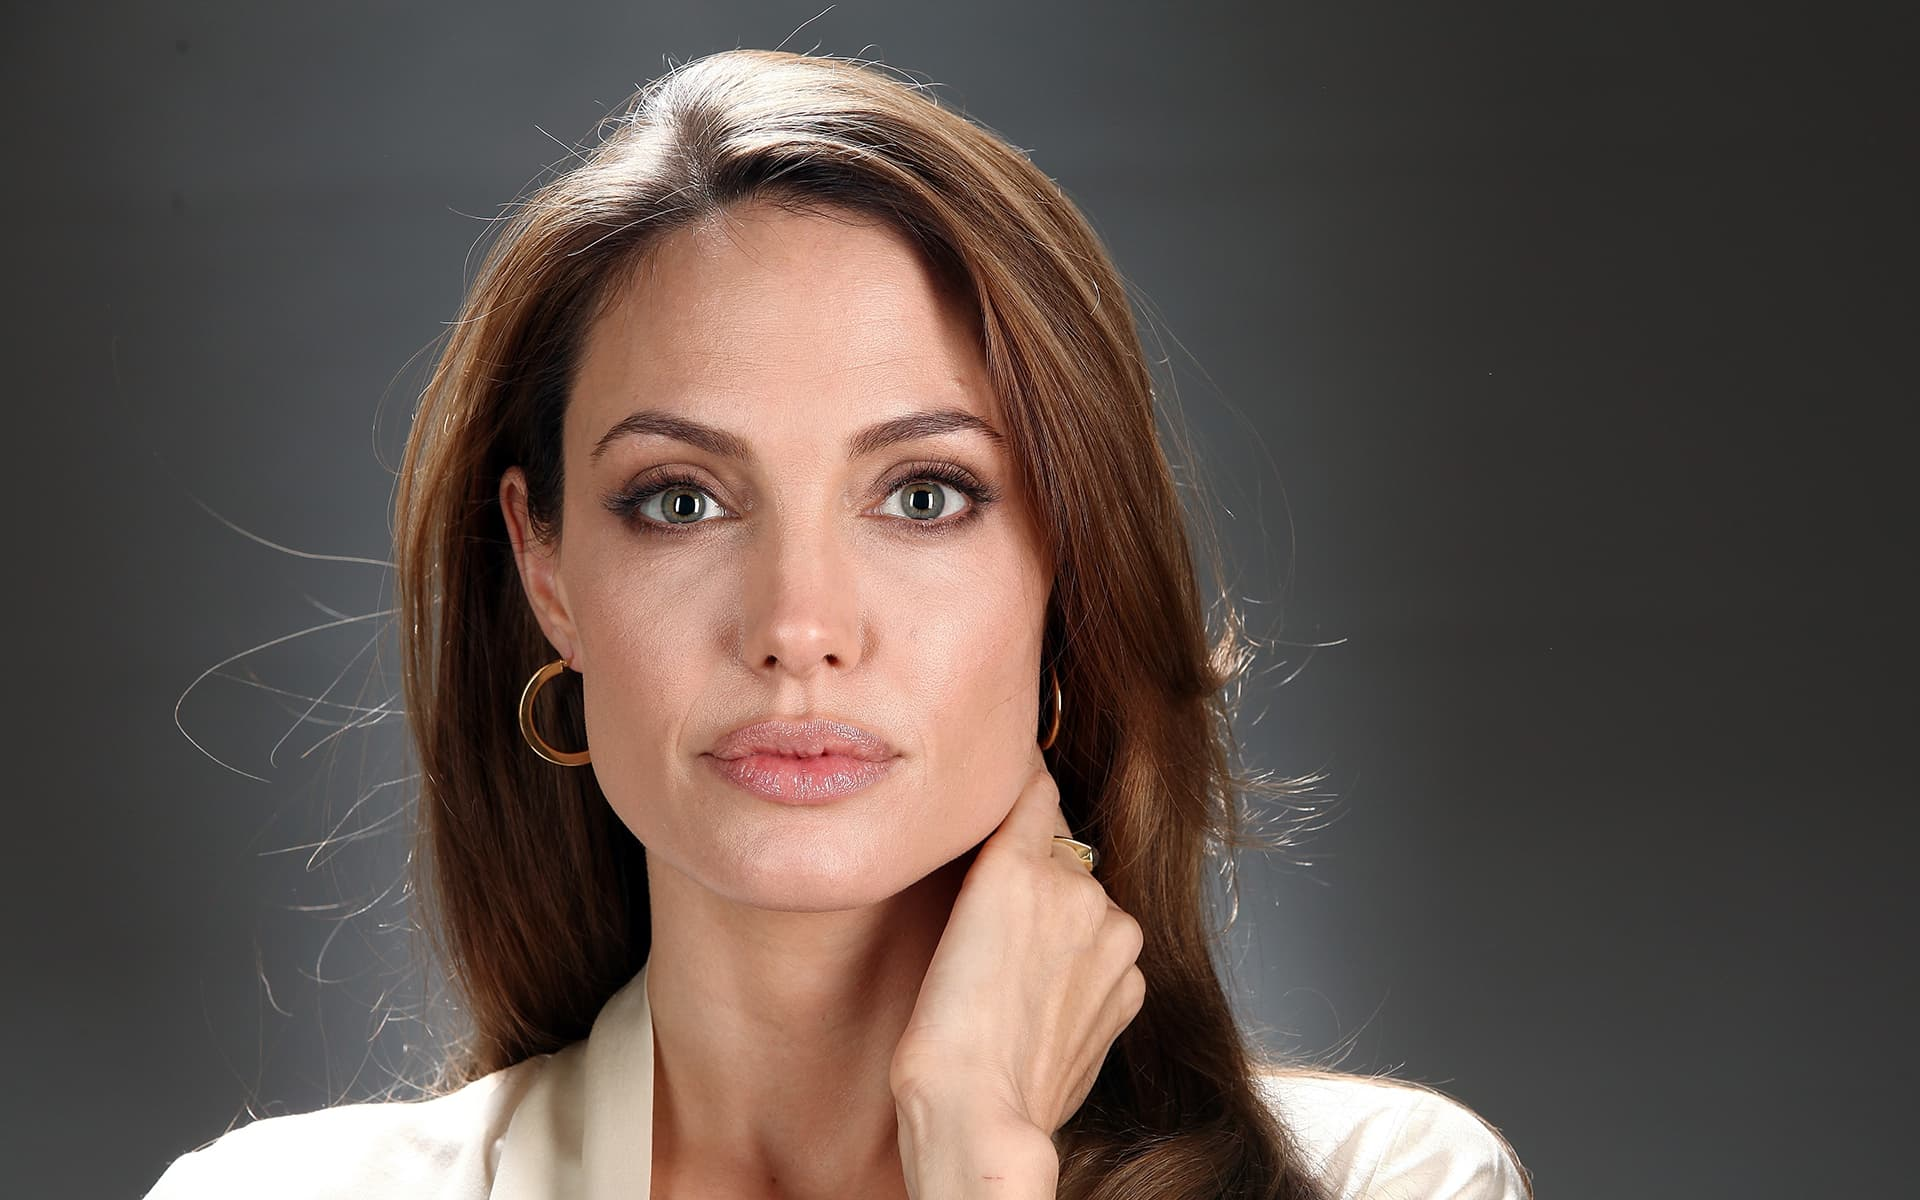 High Quality Car Pictures And Car Wallpapers 30 Angelina Jolie Wallpapers High Quality Resolution Download